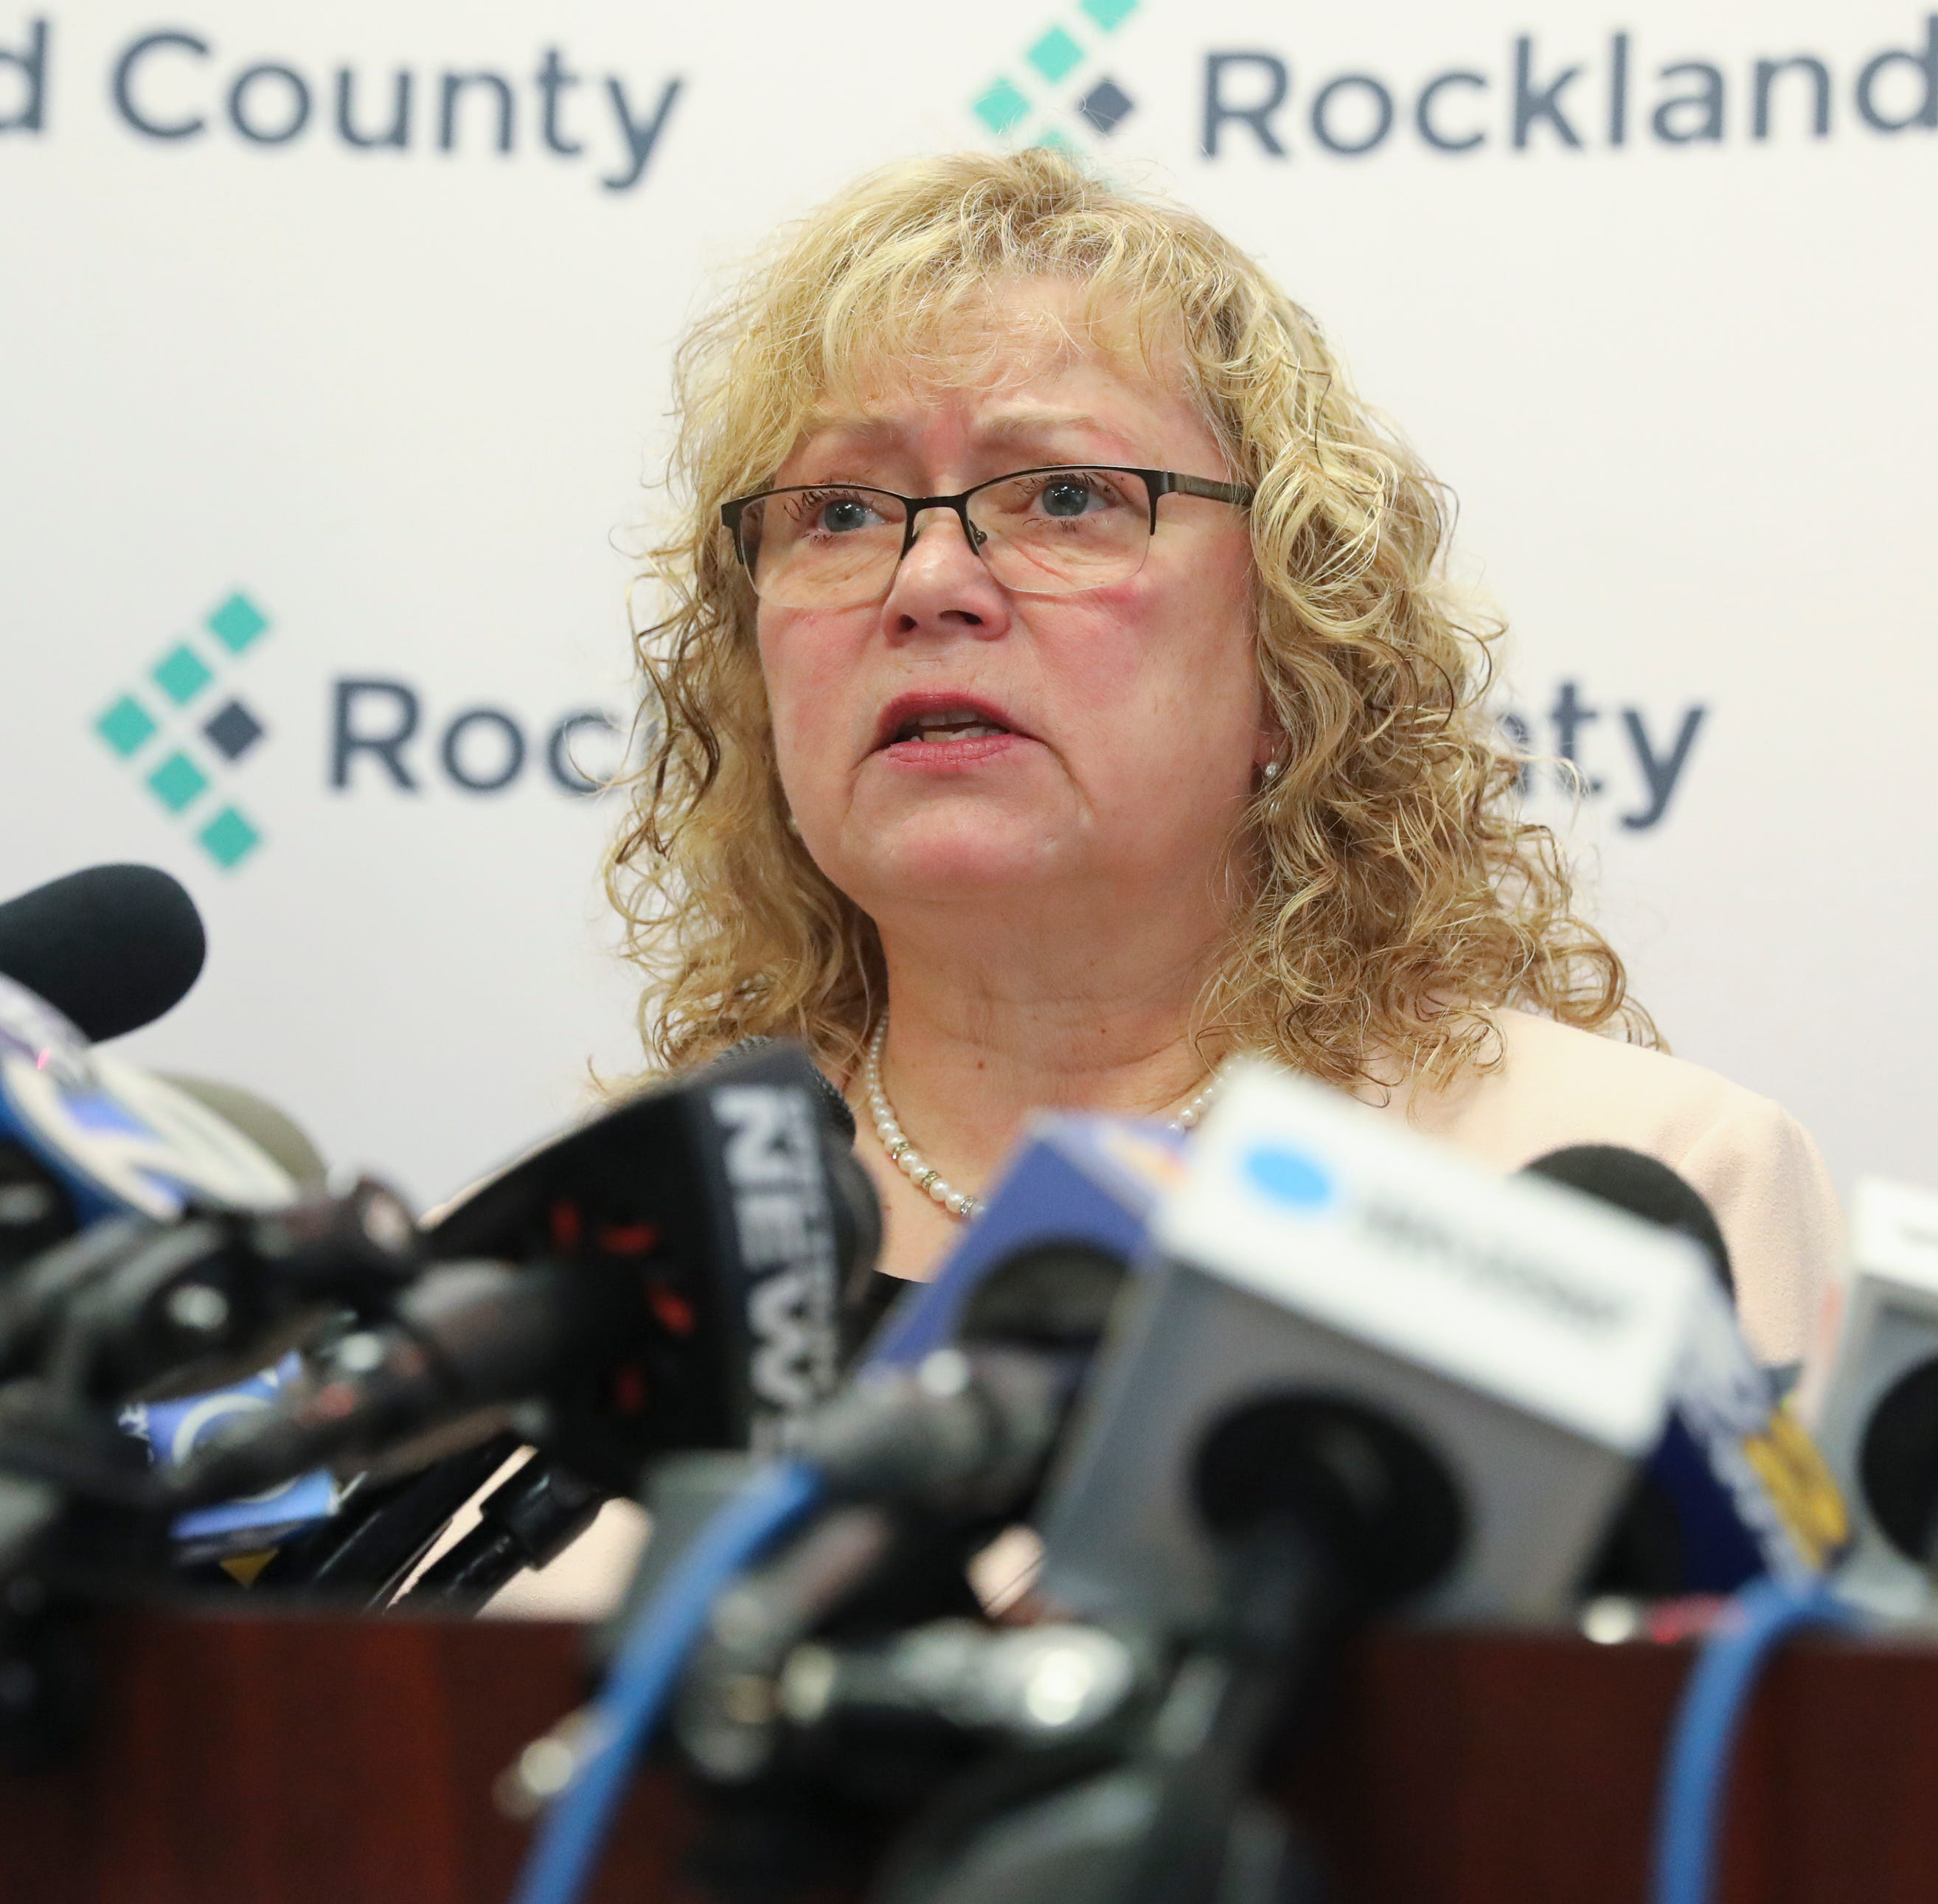 Measles cases continue to rise in Rockland despite more immunizations